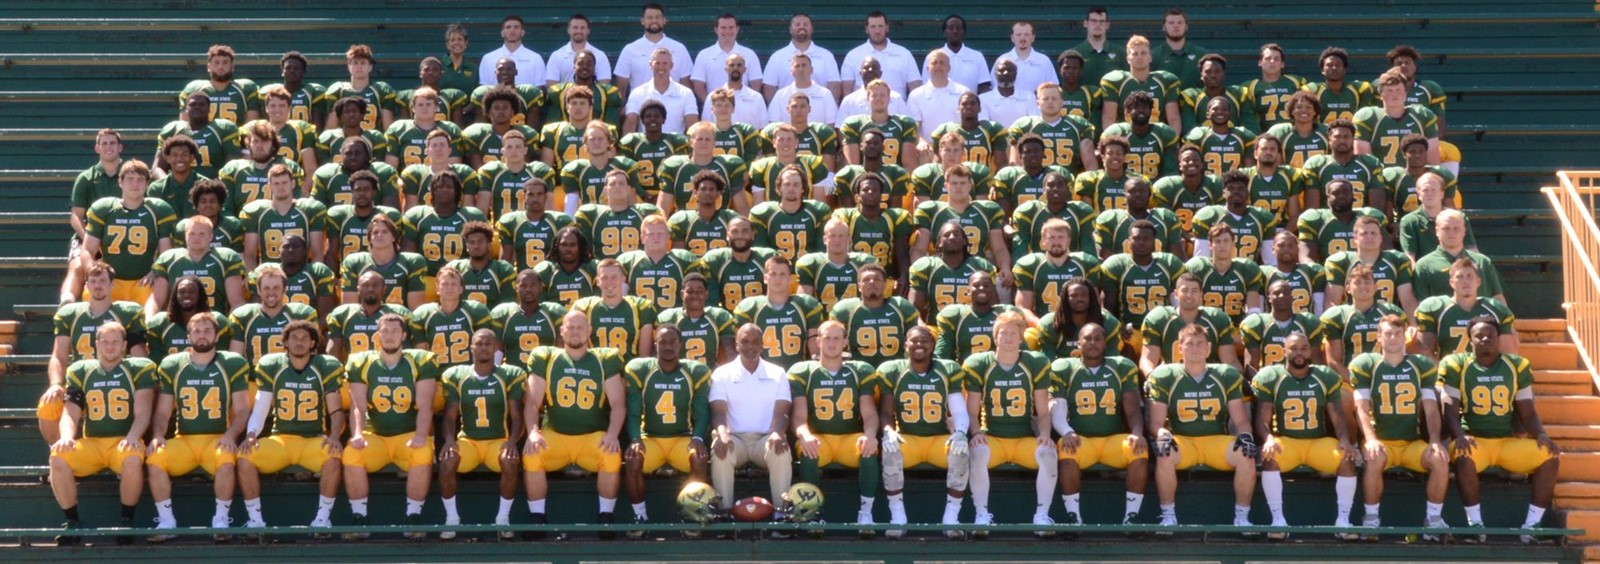 2019 Football Roster - Wayne State University Athletics